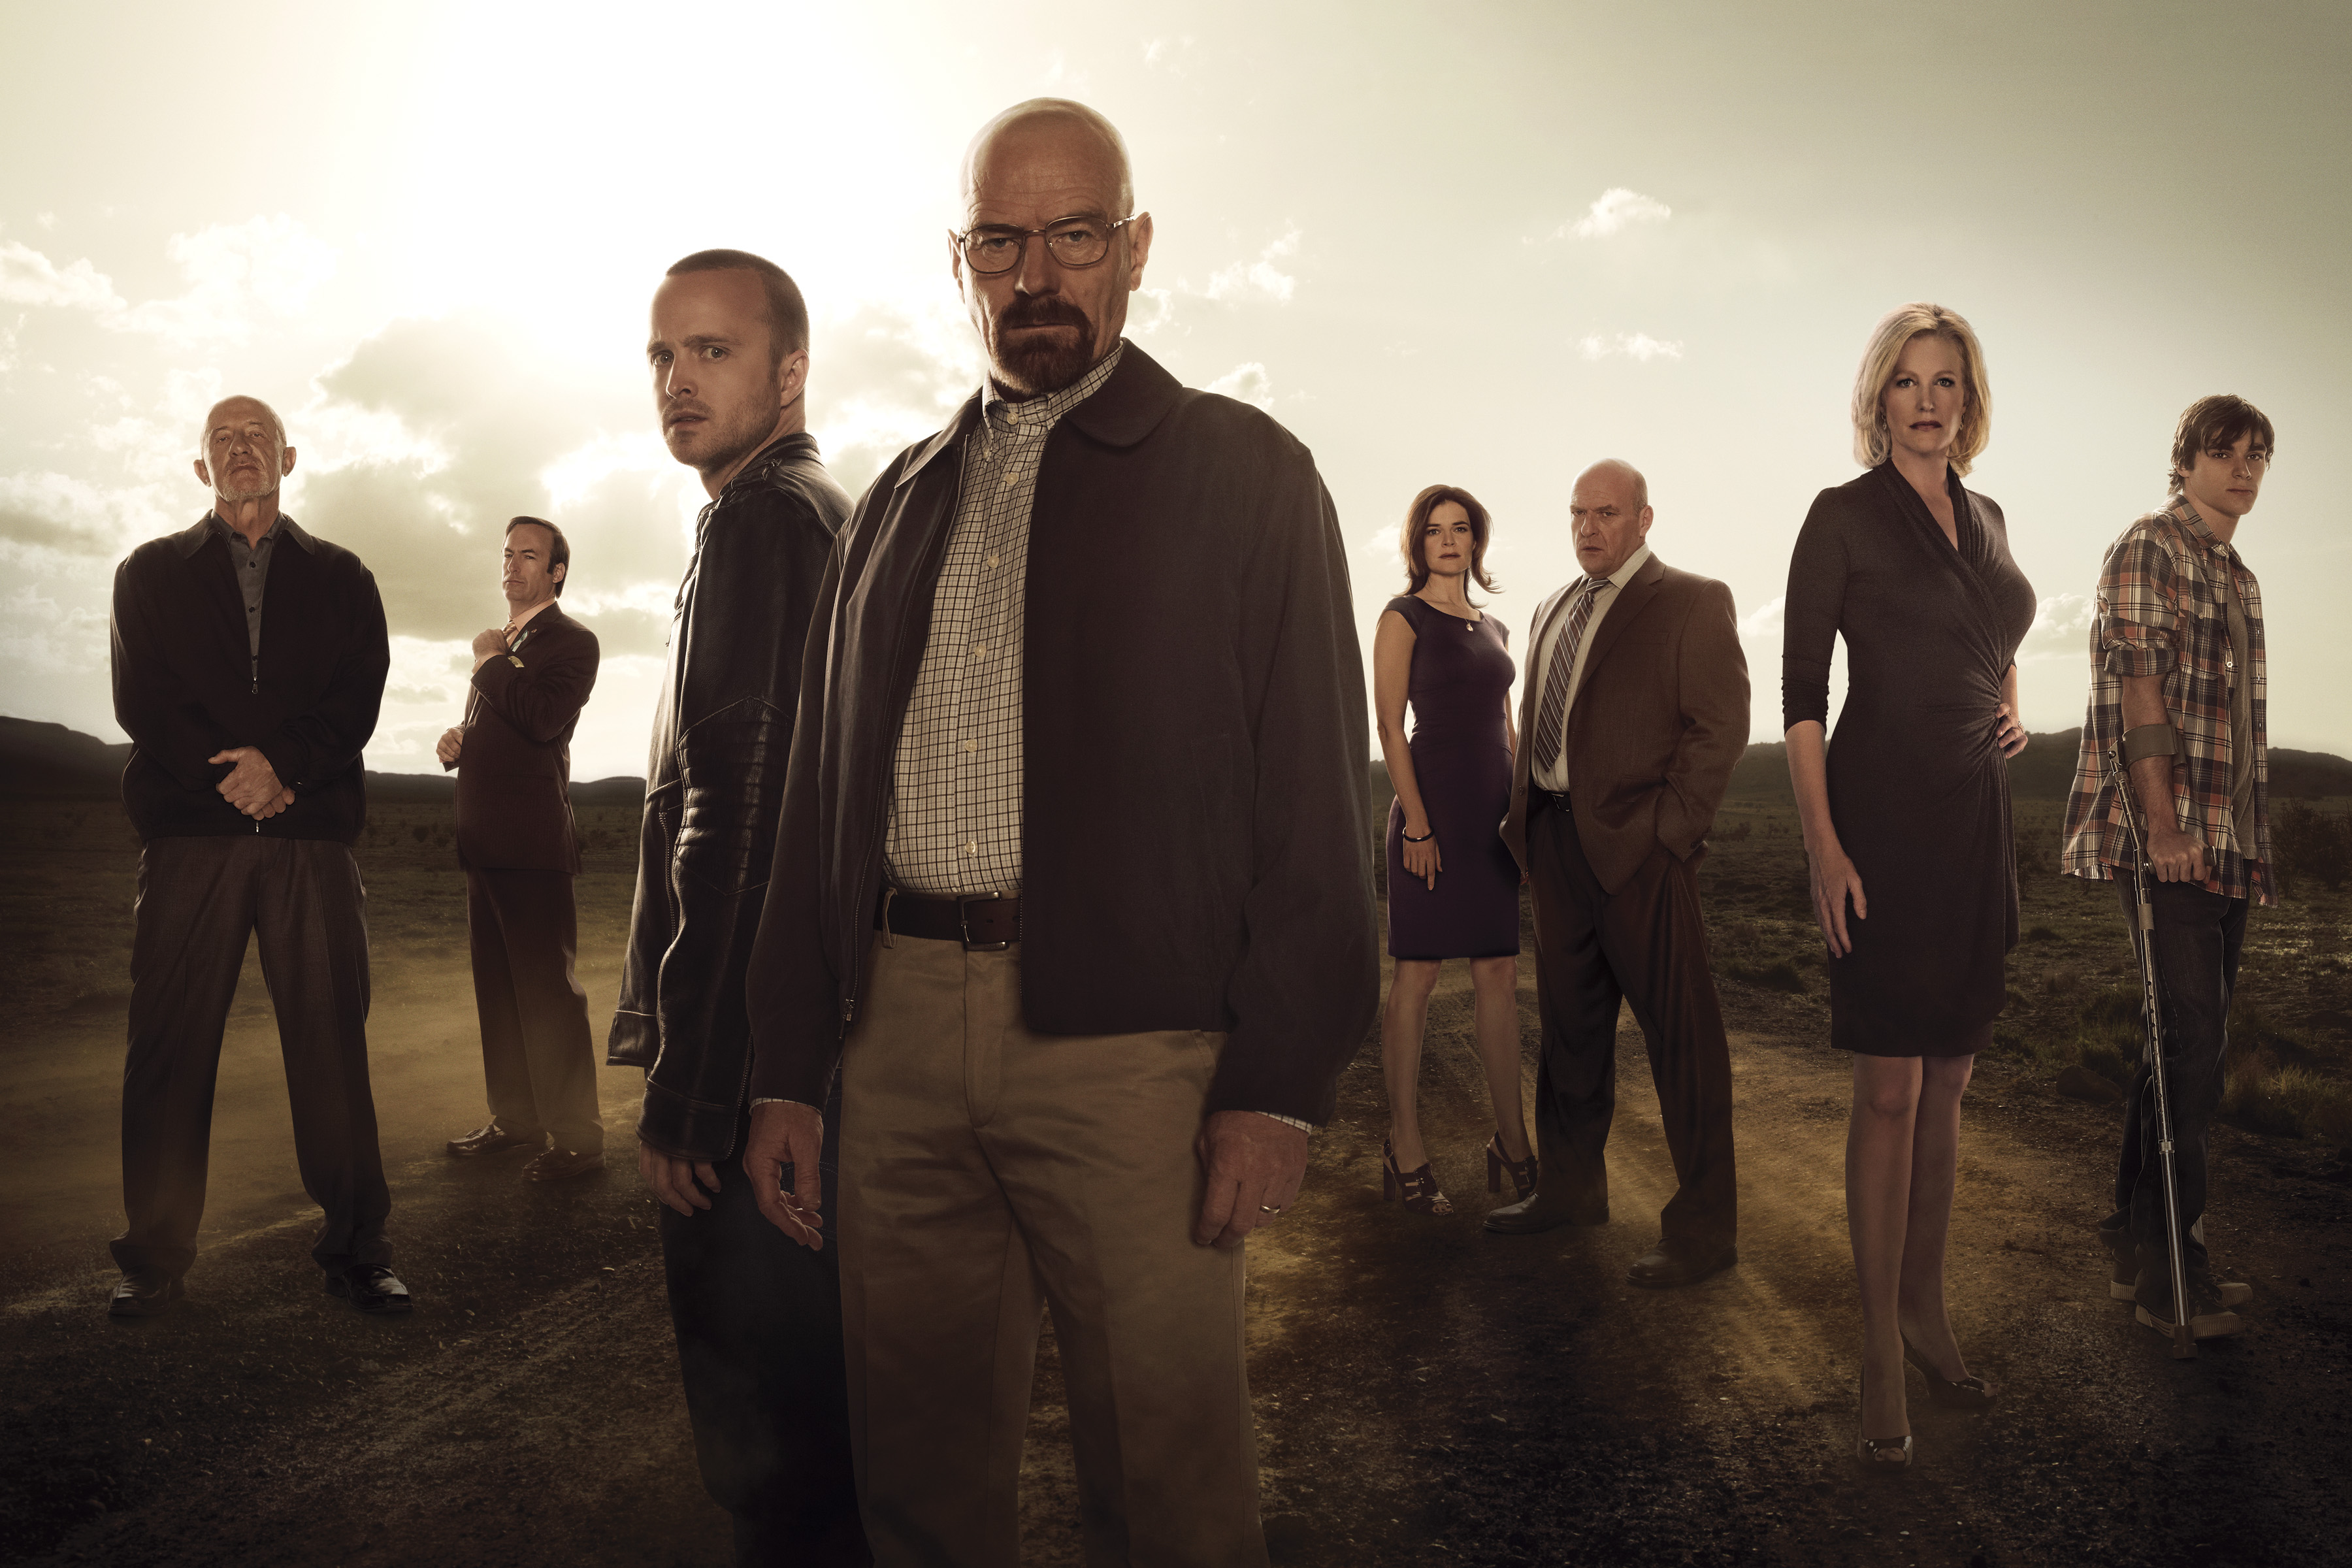 Breaking Bad Season 5 Photos Show The Cast And Walter White's Partner Relationships #22576